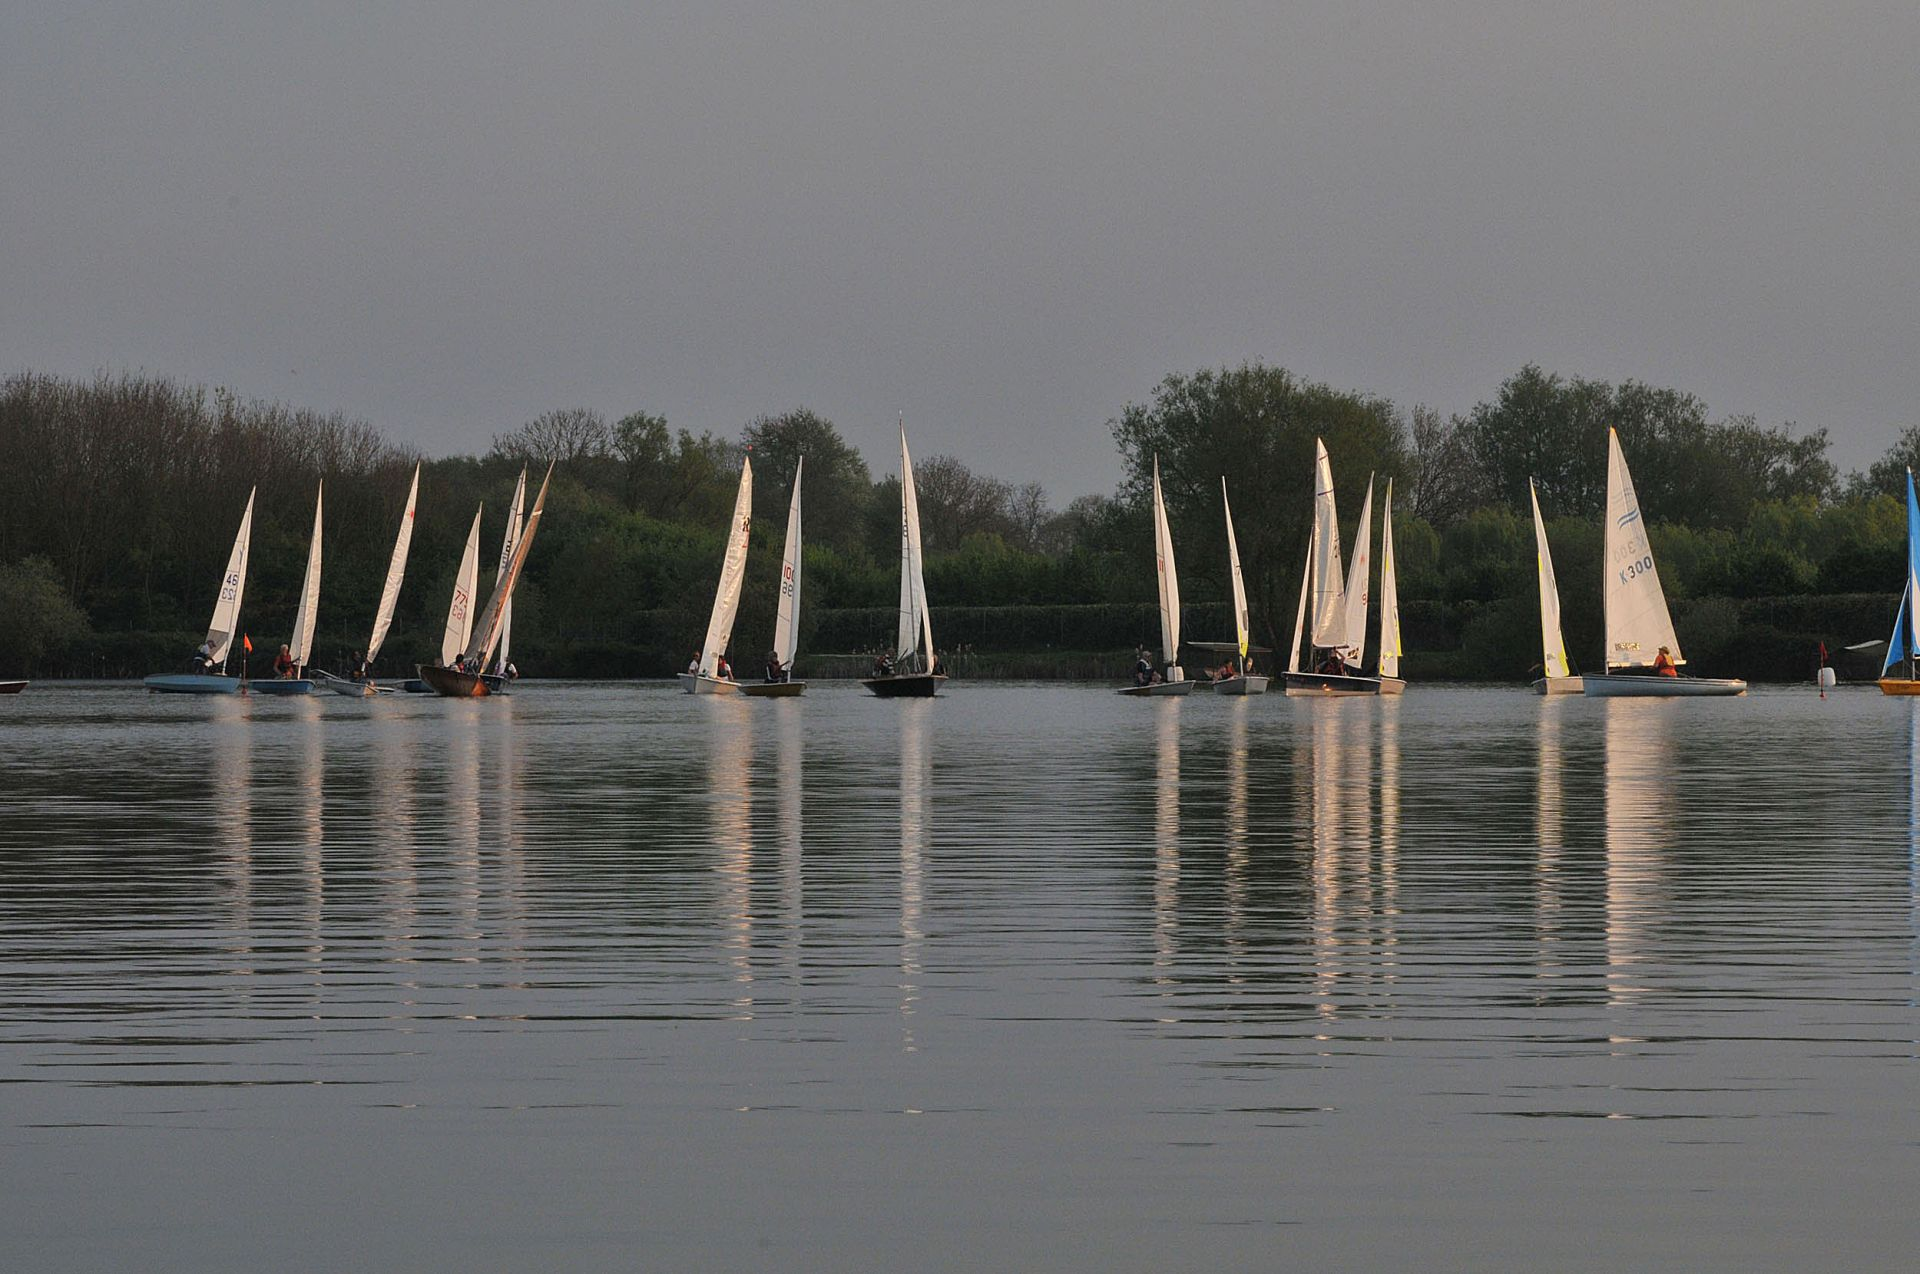 Sailing at Whitefriars